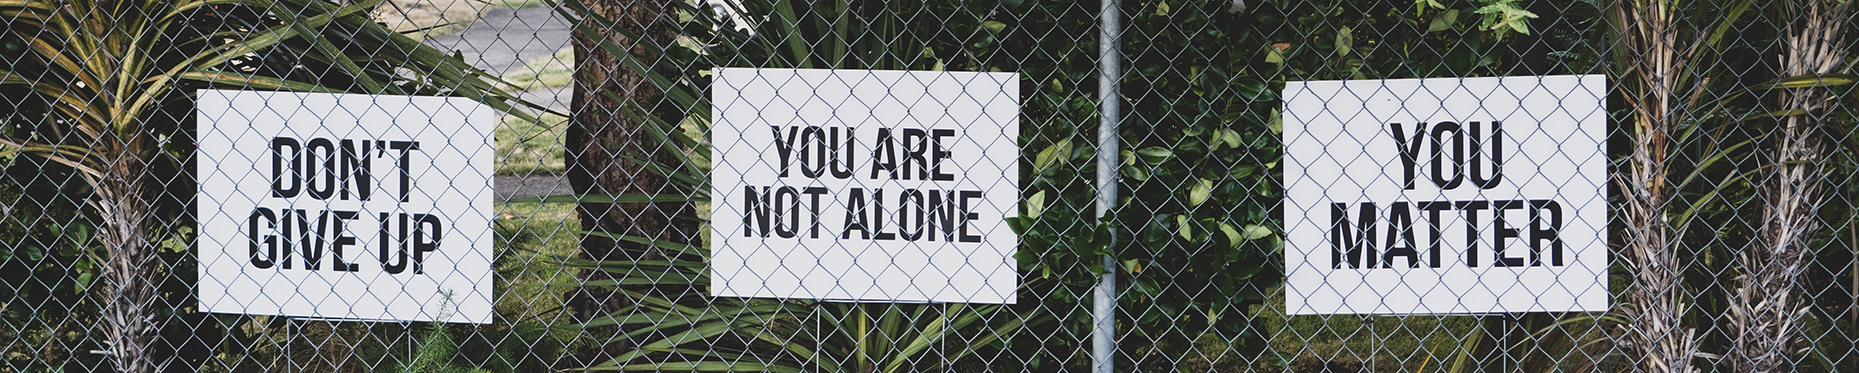 three signs behind fence: don't give up, you are not alone, you matter